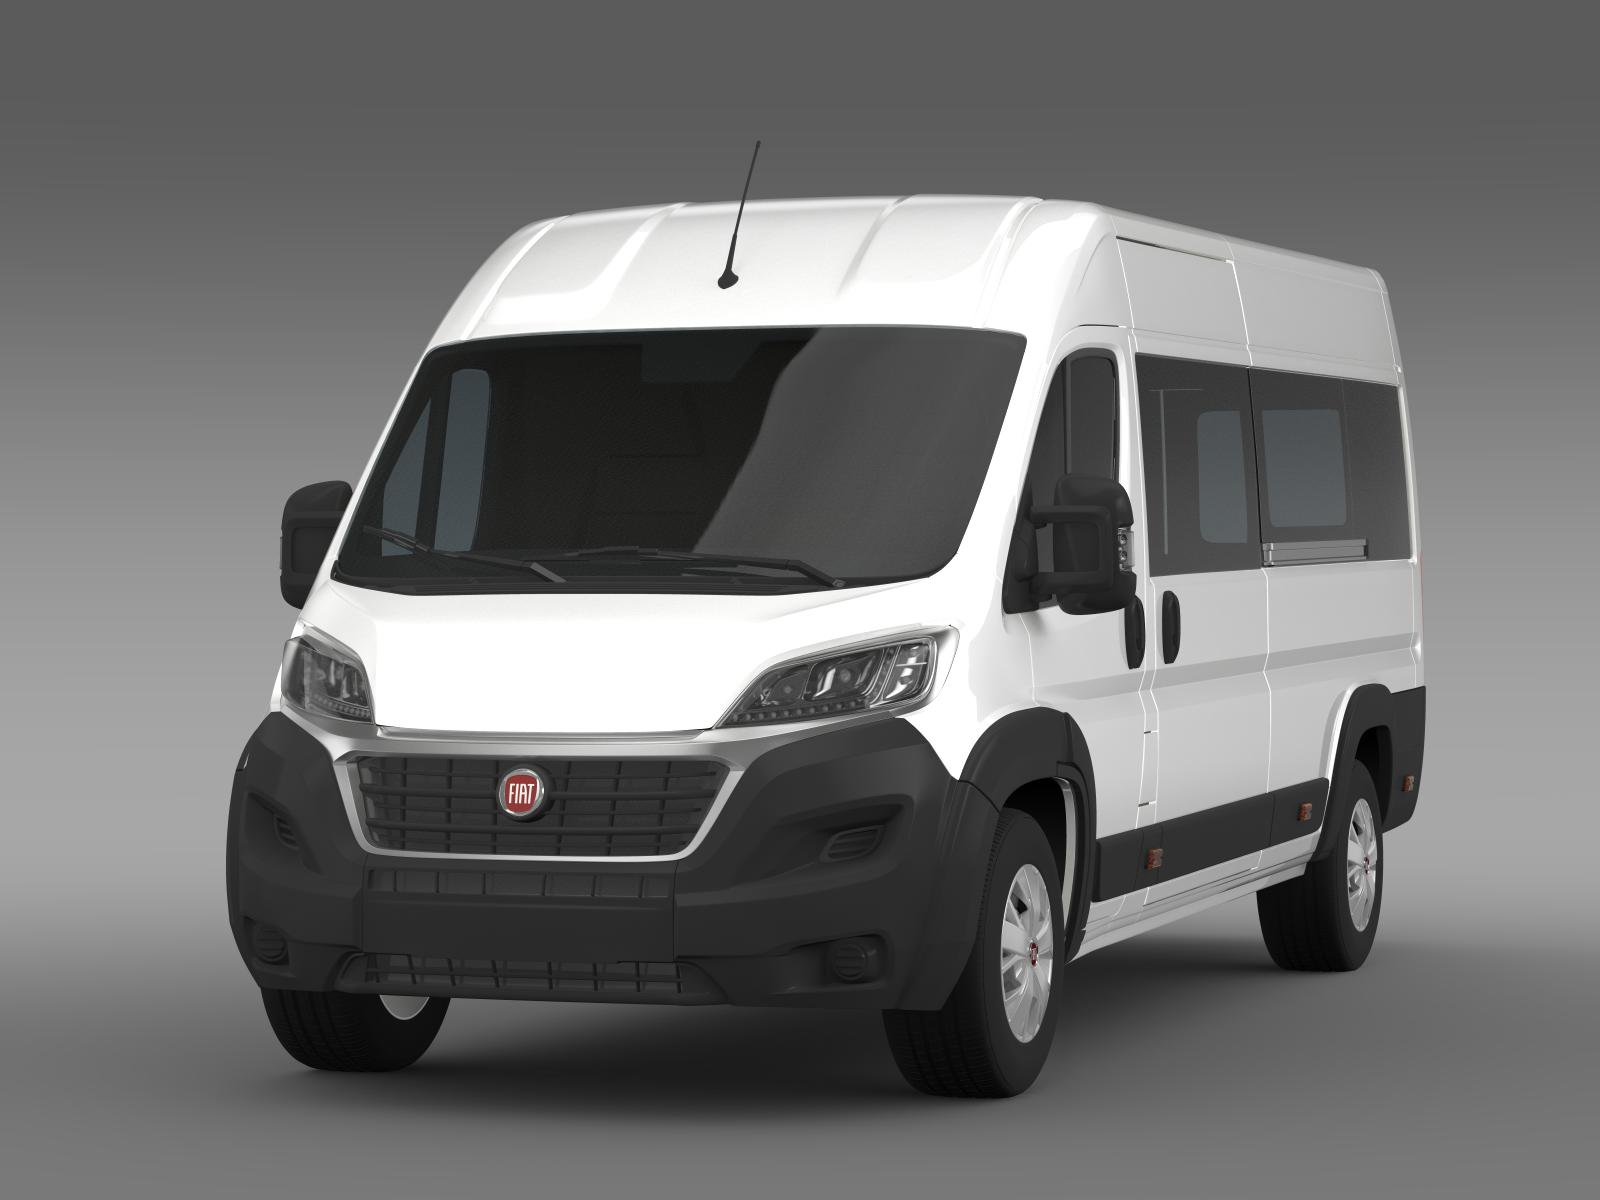 fiat ducato maxi minibus 2015 3d model buy fiat ducato. Black Bedroom Furniture Sets. Home Design Ideas